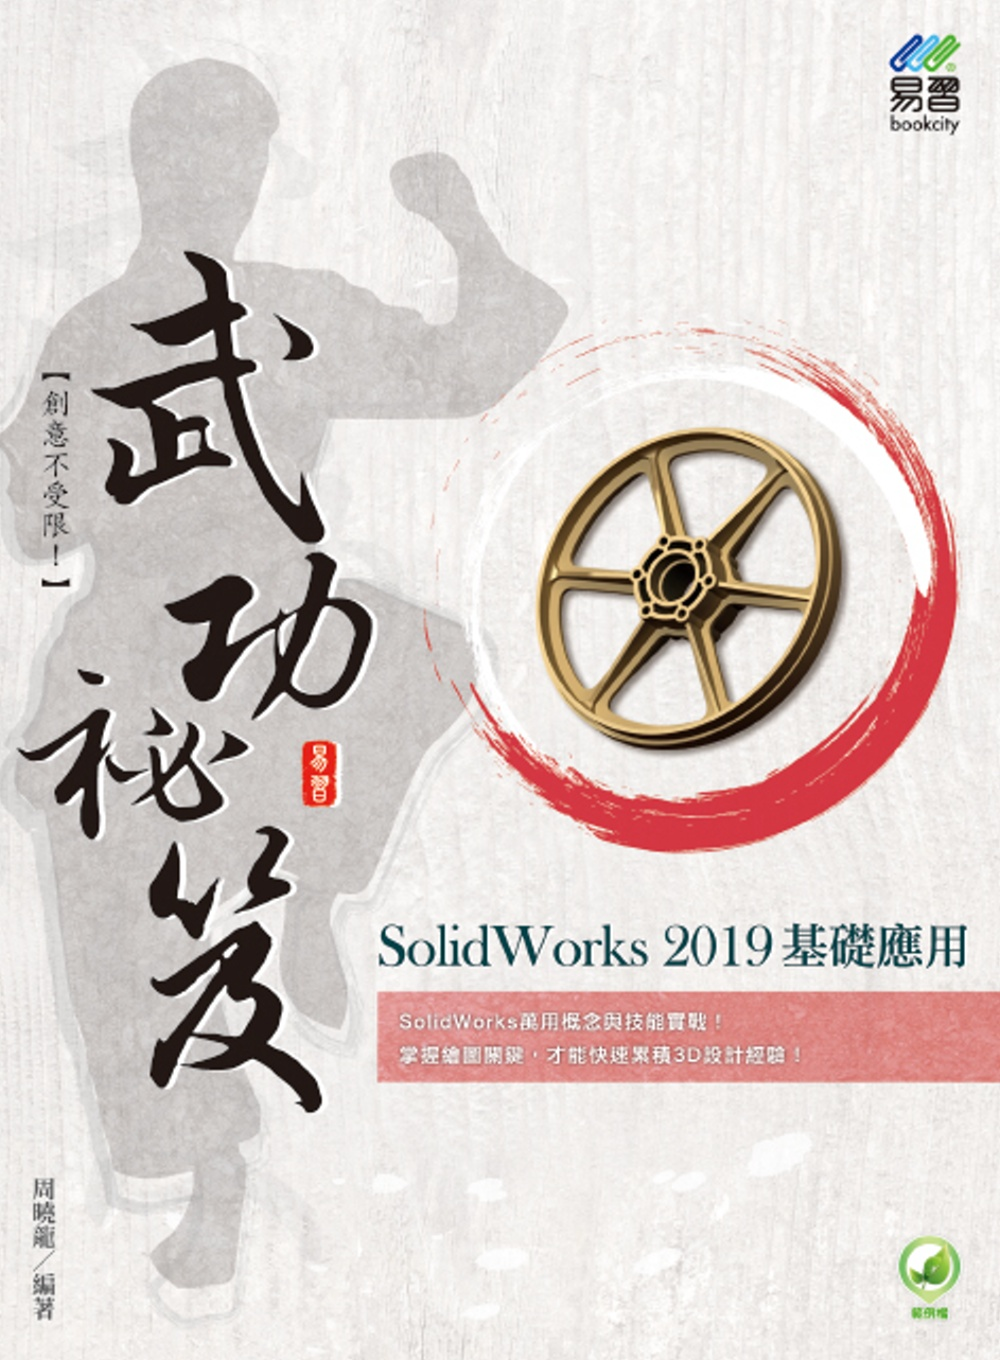 SolidWorks 2019...